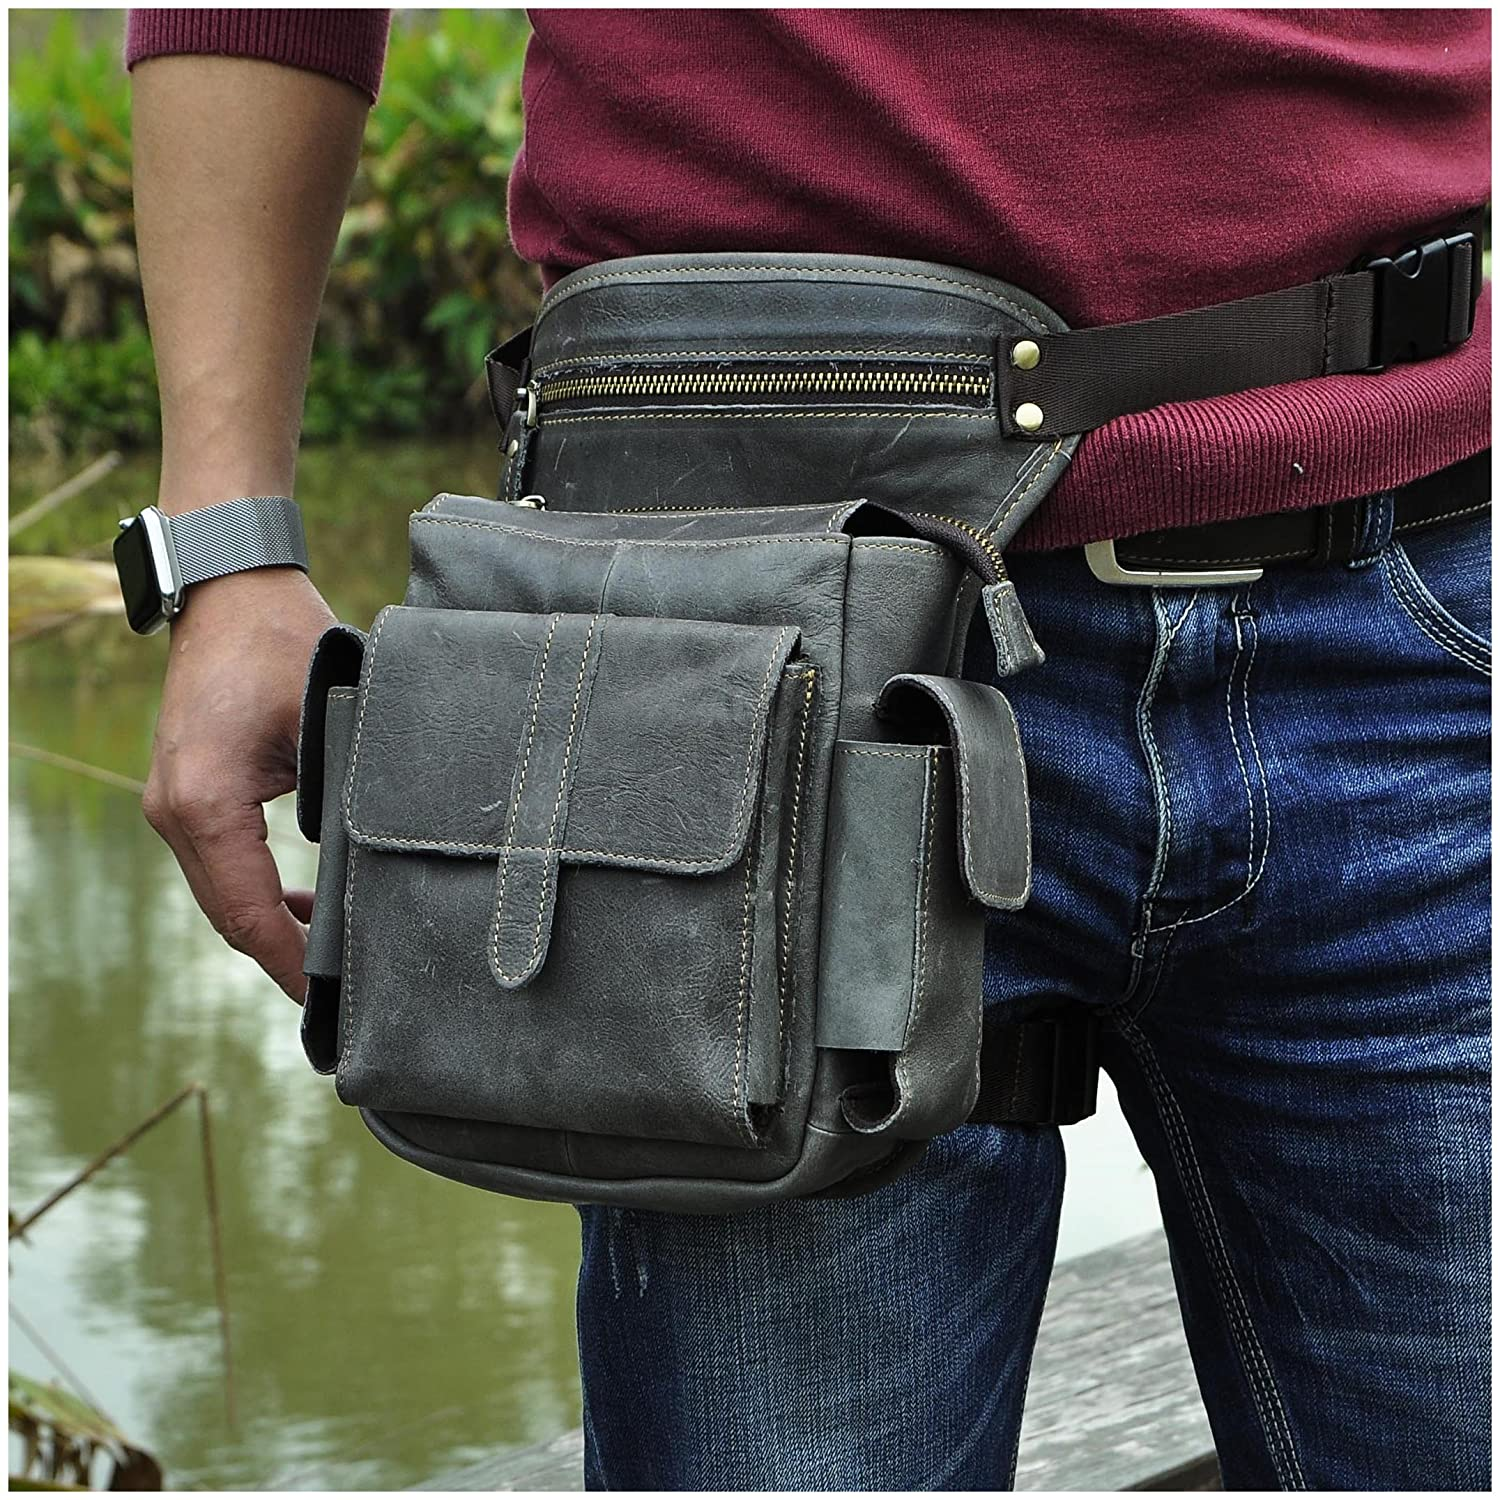 20d9124bd01e Le'aokuu Mens Genuine Leather Bike Cycling Waist Hip Bum Fanny Pack Drop  Leg Bag 913-5 (Grey 2)